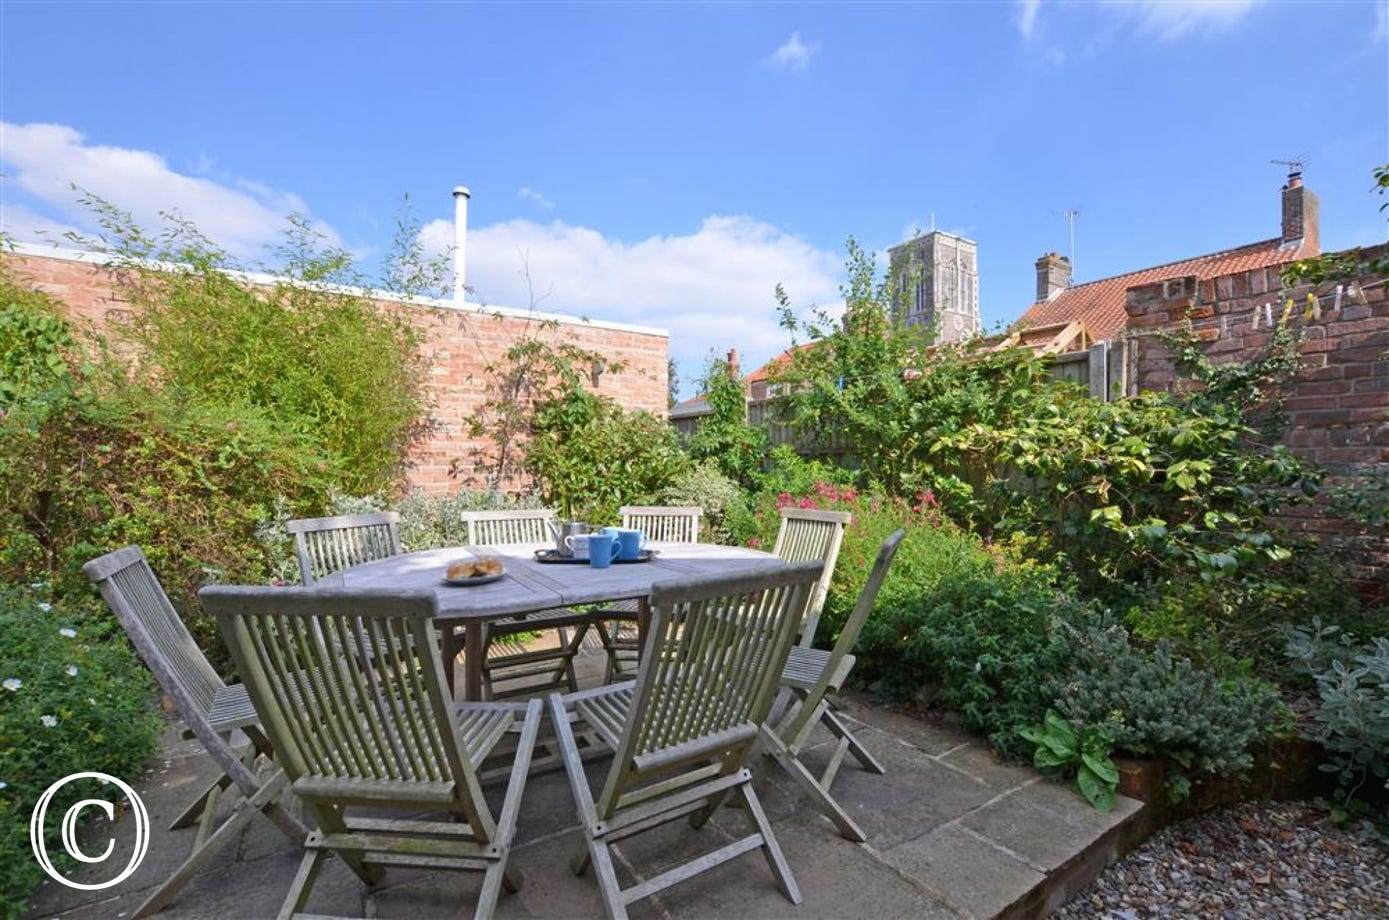 Enjoy the outside rear garden with its table and chairs.